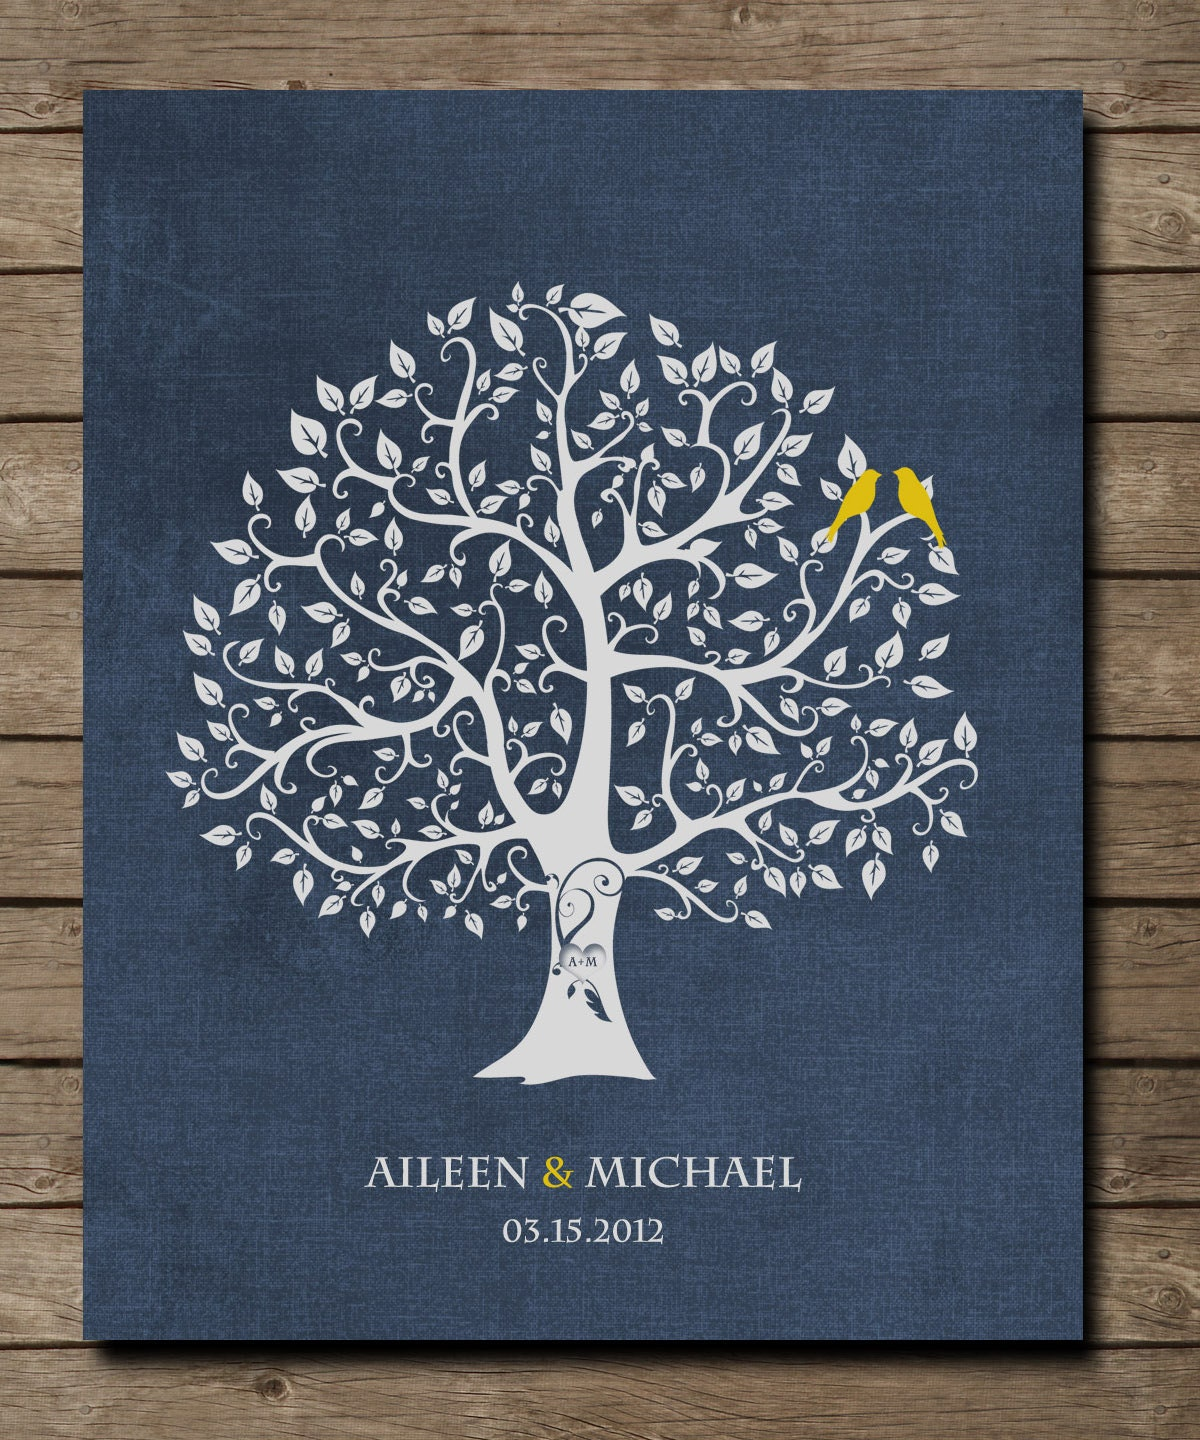 Custom Wedding Art Poster: Custom Wedding Accessories: Personalized Wedding Gift For